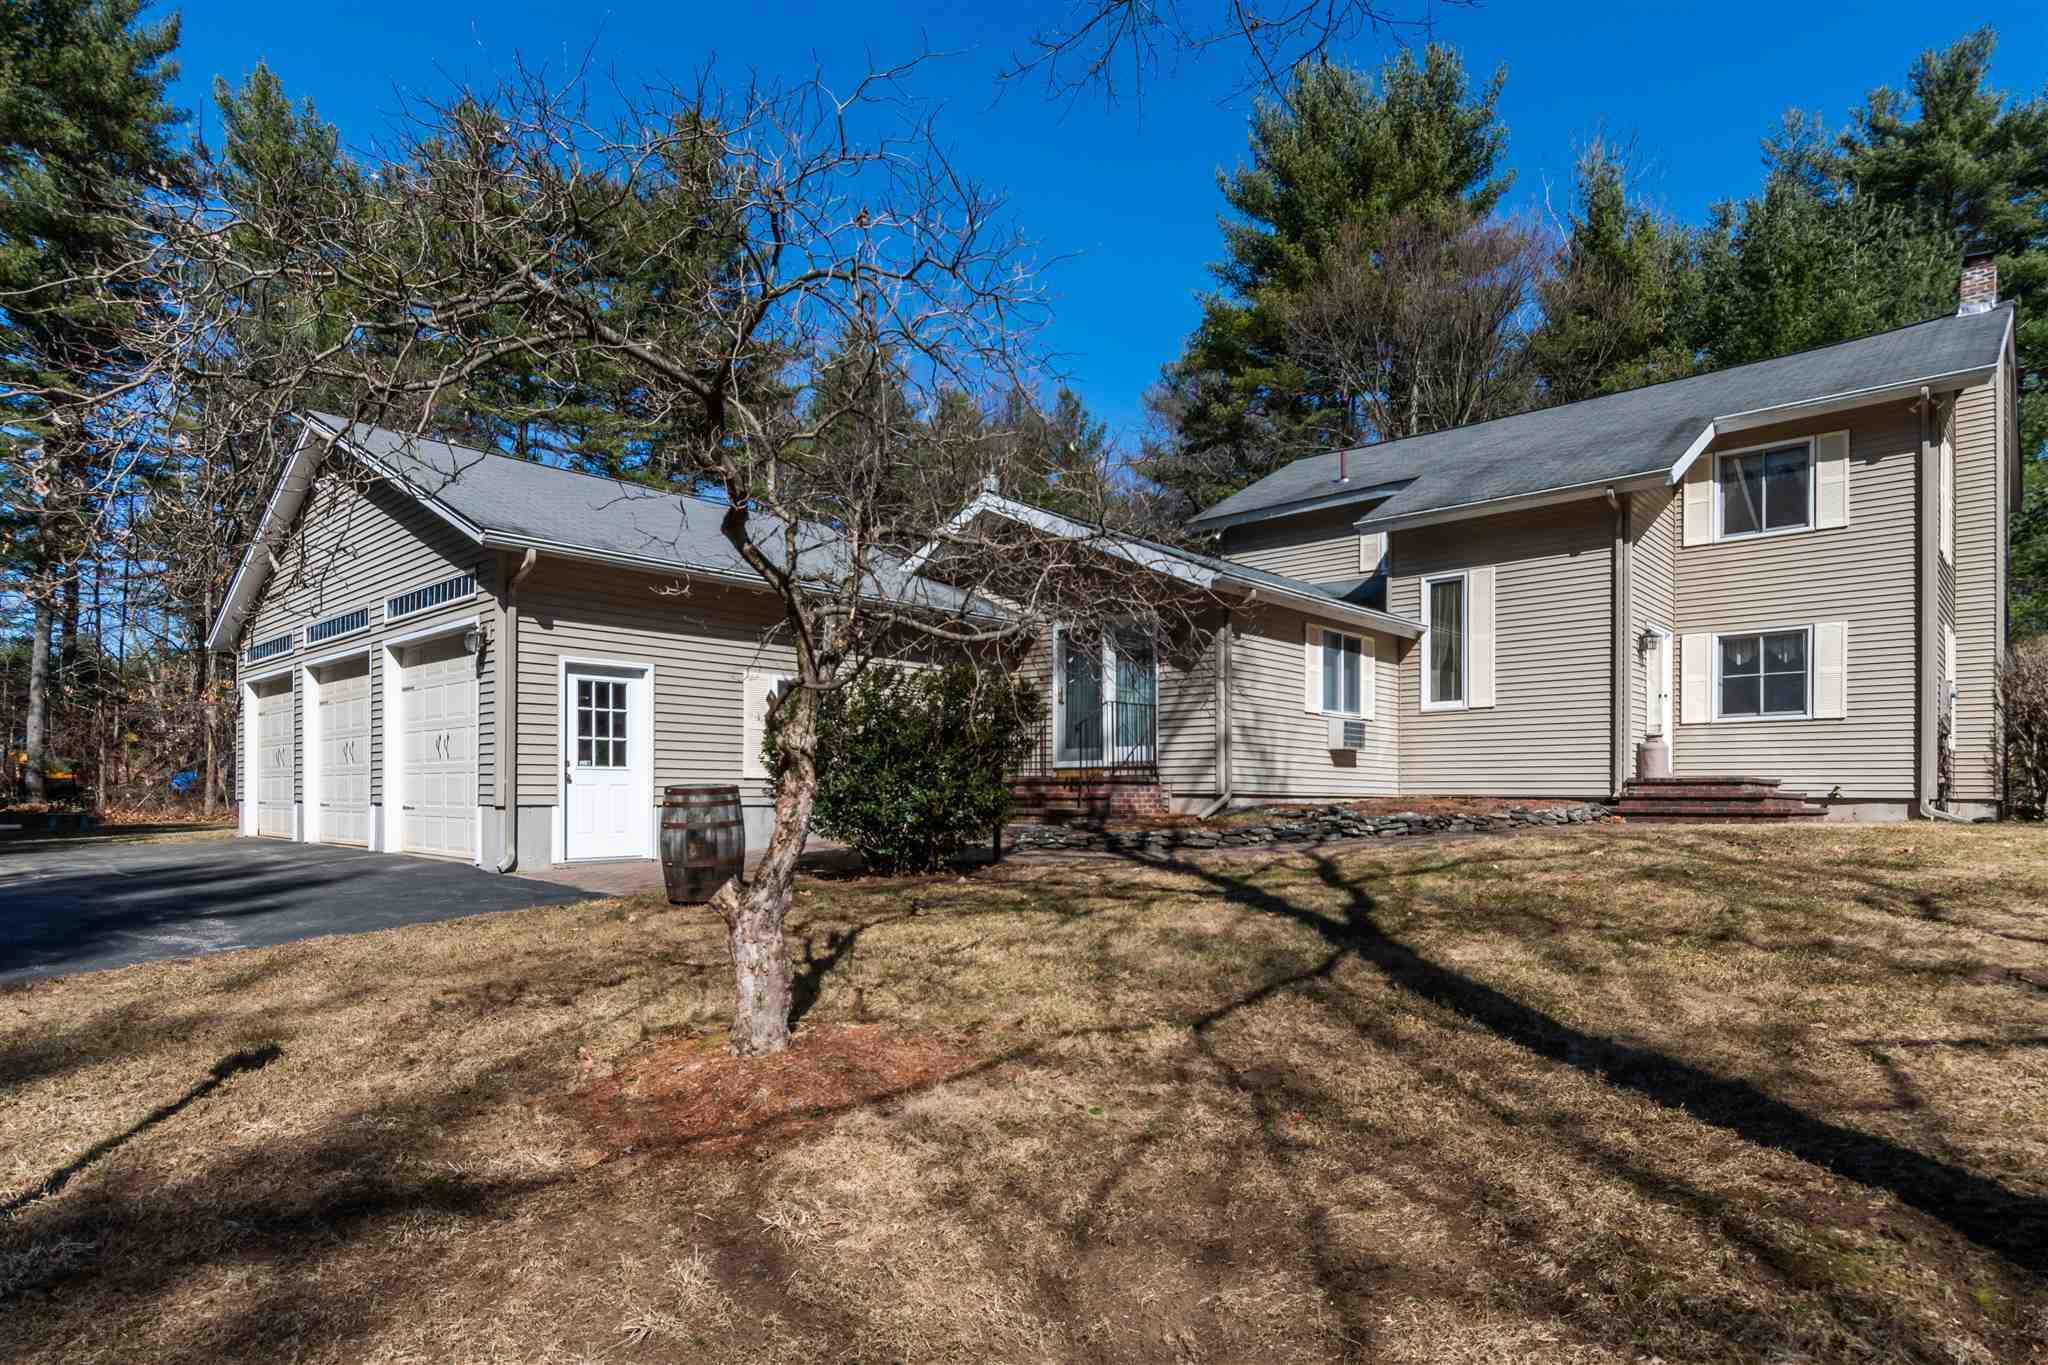 MLS 4799219: 34 Thornton W Road, Merrimack NH